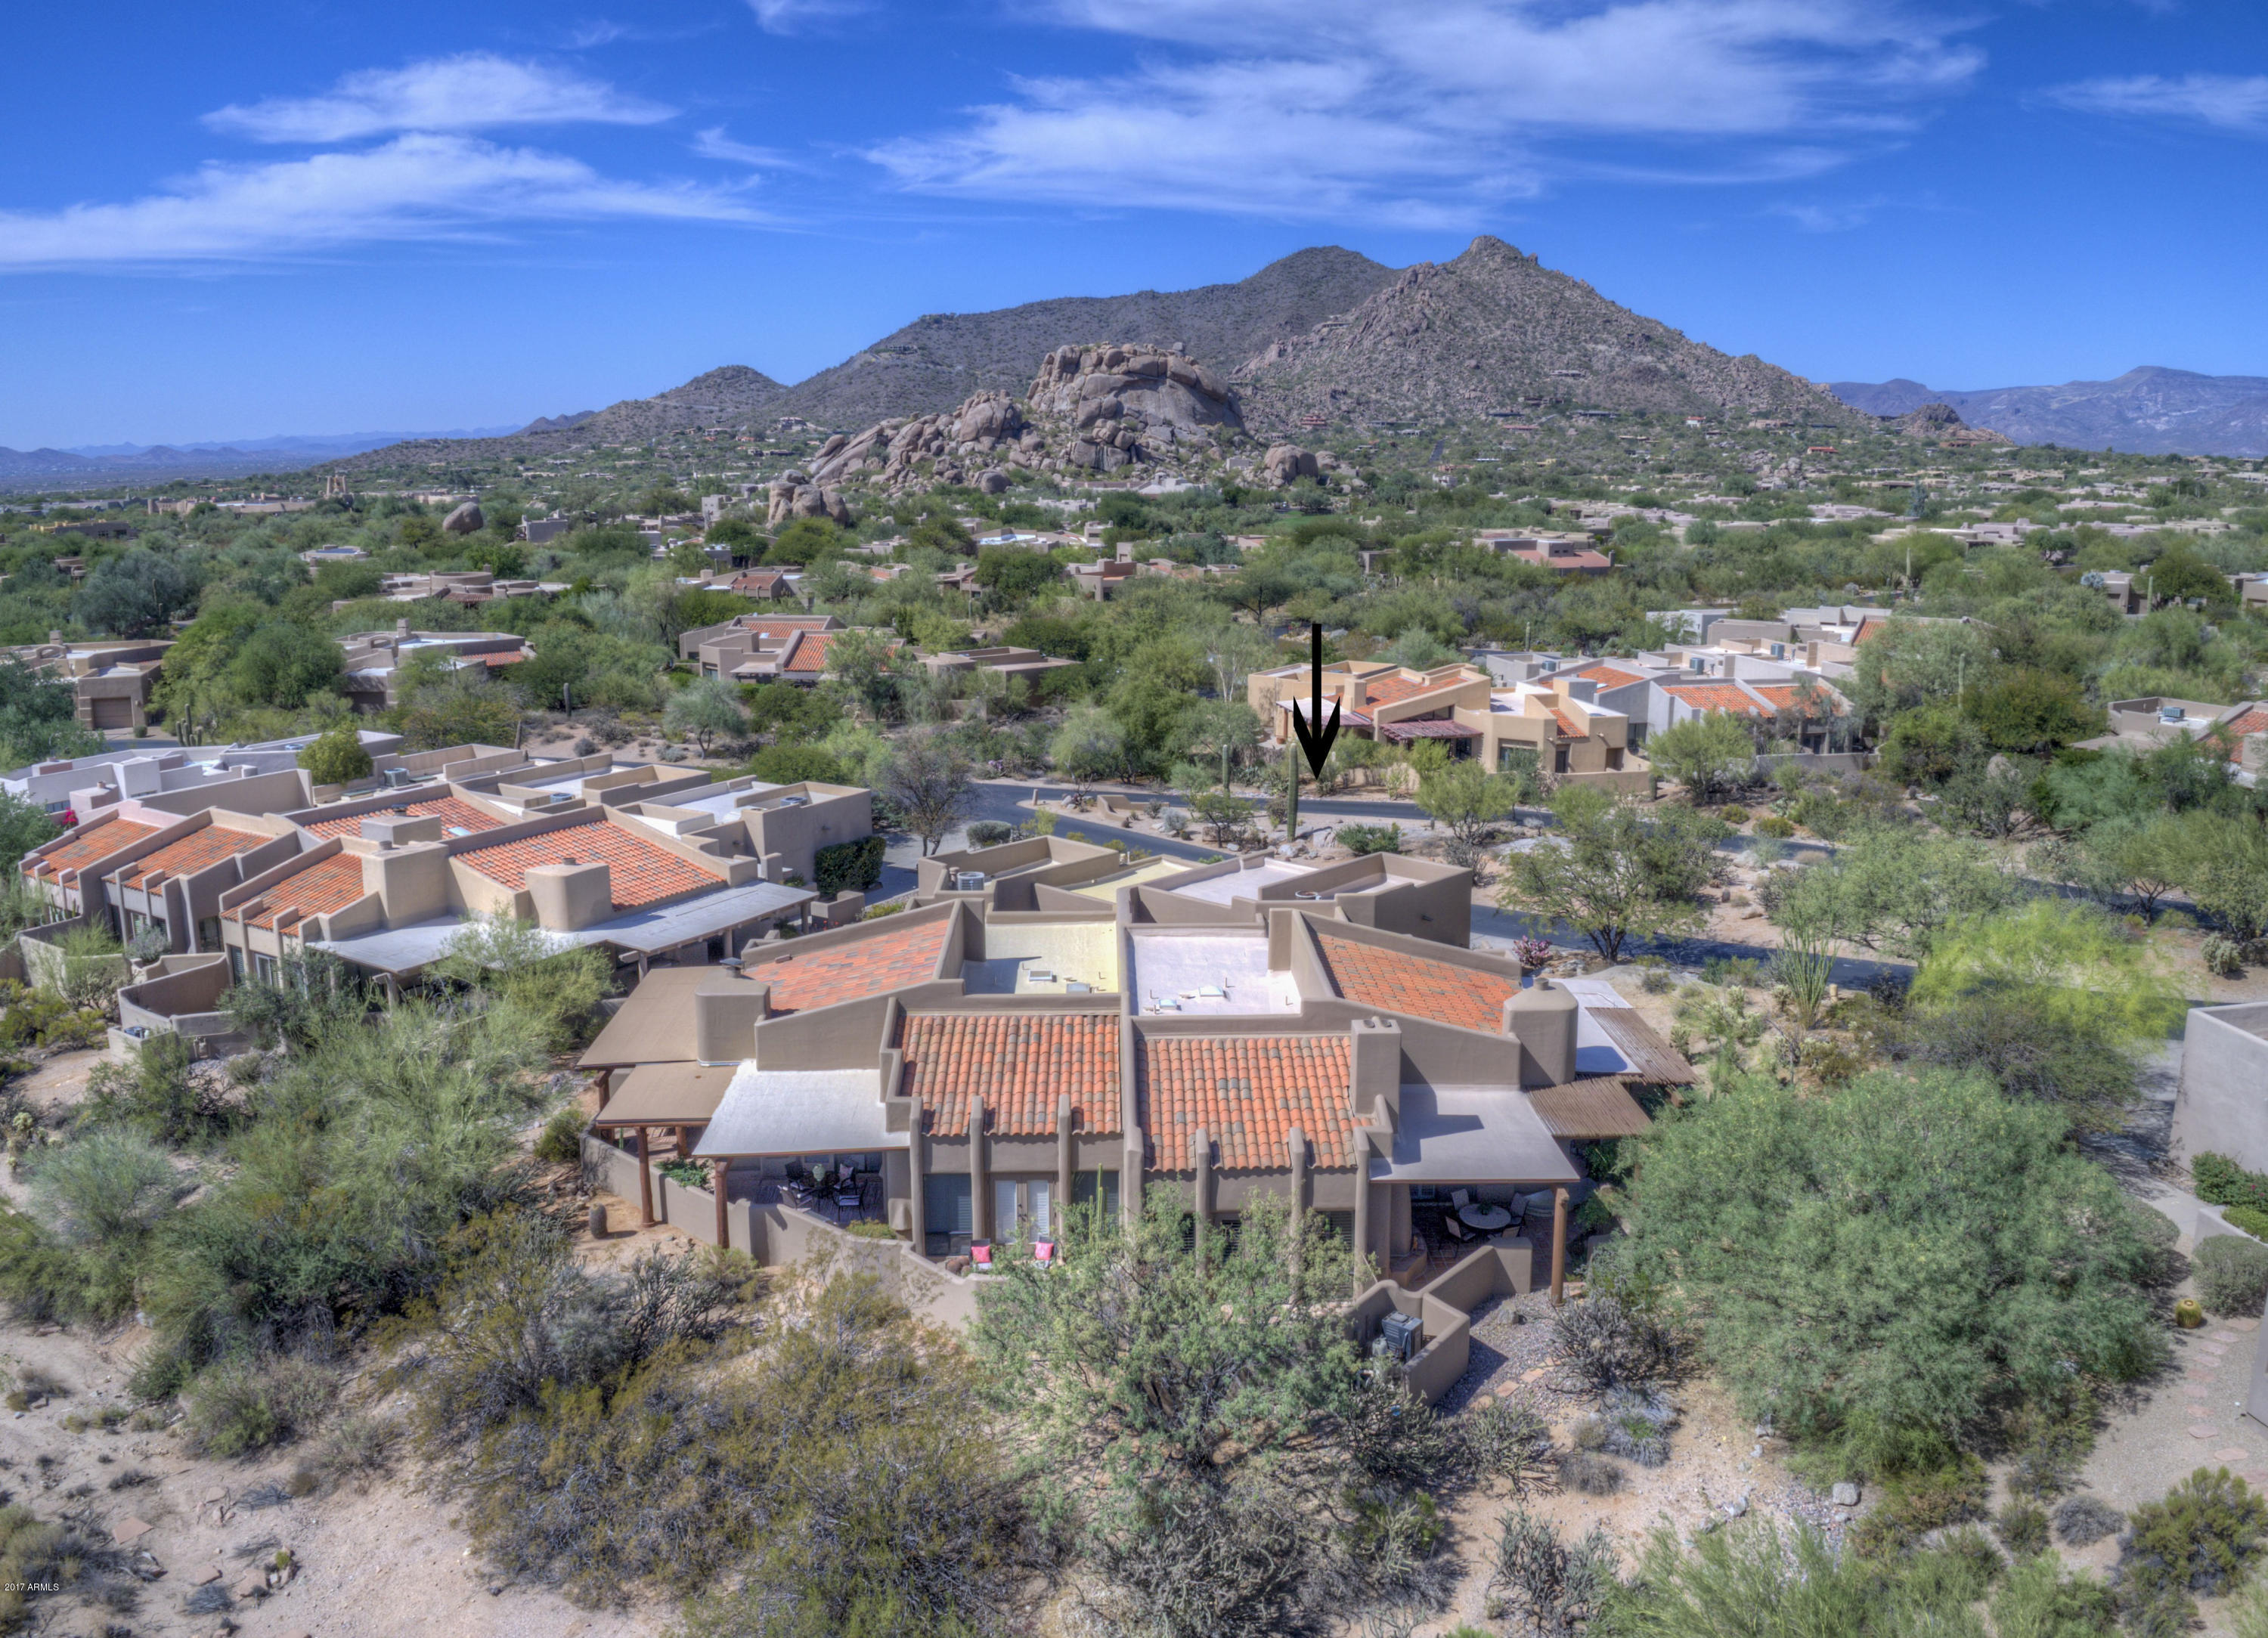 MLS 5674889 9242 E WHITETHORN Circle, Scottsdale, AZ 85266 Scottsdale AZ The Boulders